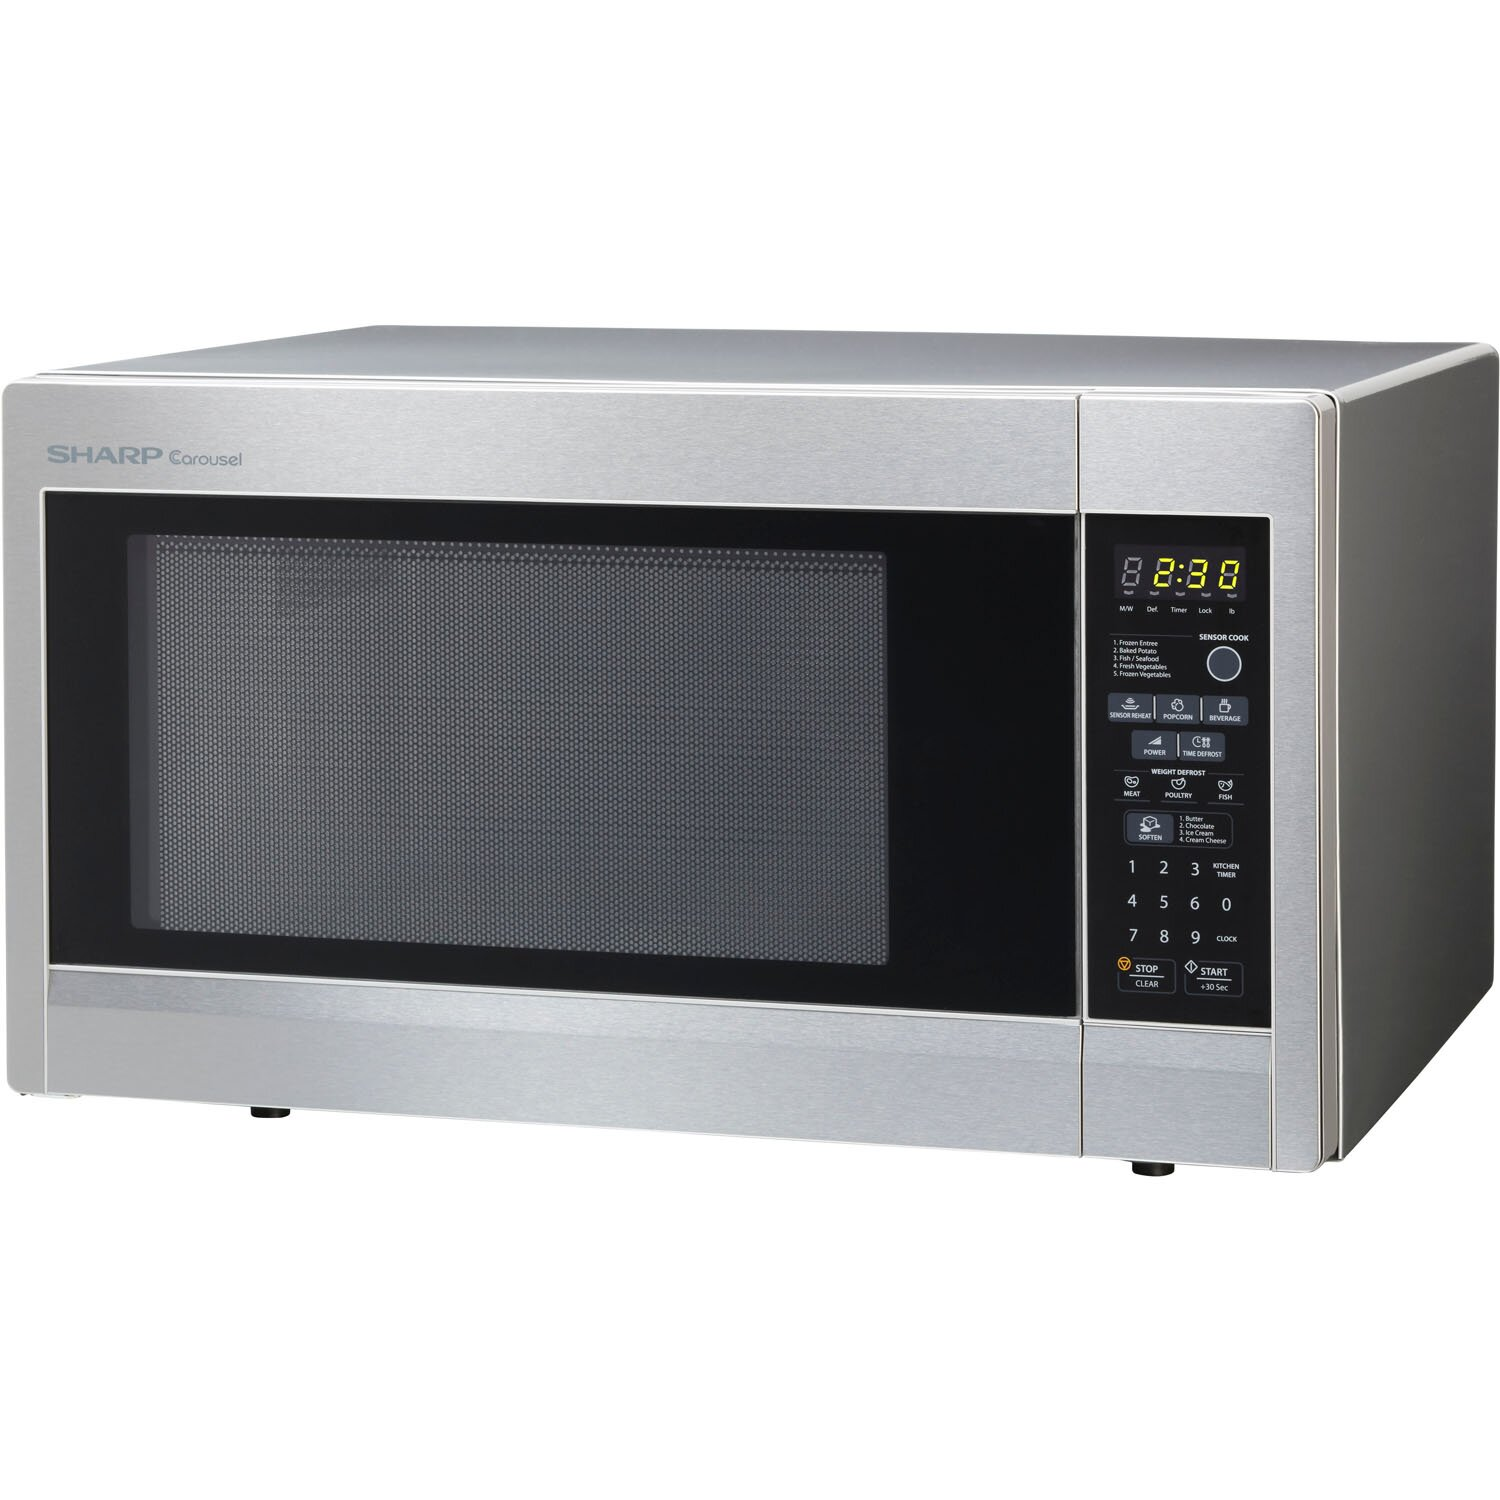 First Countertop Microwave : Sharp 1.8 Cu. Ft. 1100W Countertop Microwave